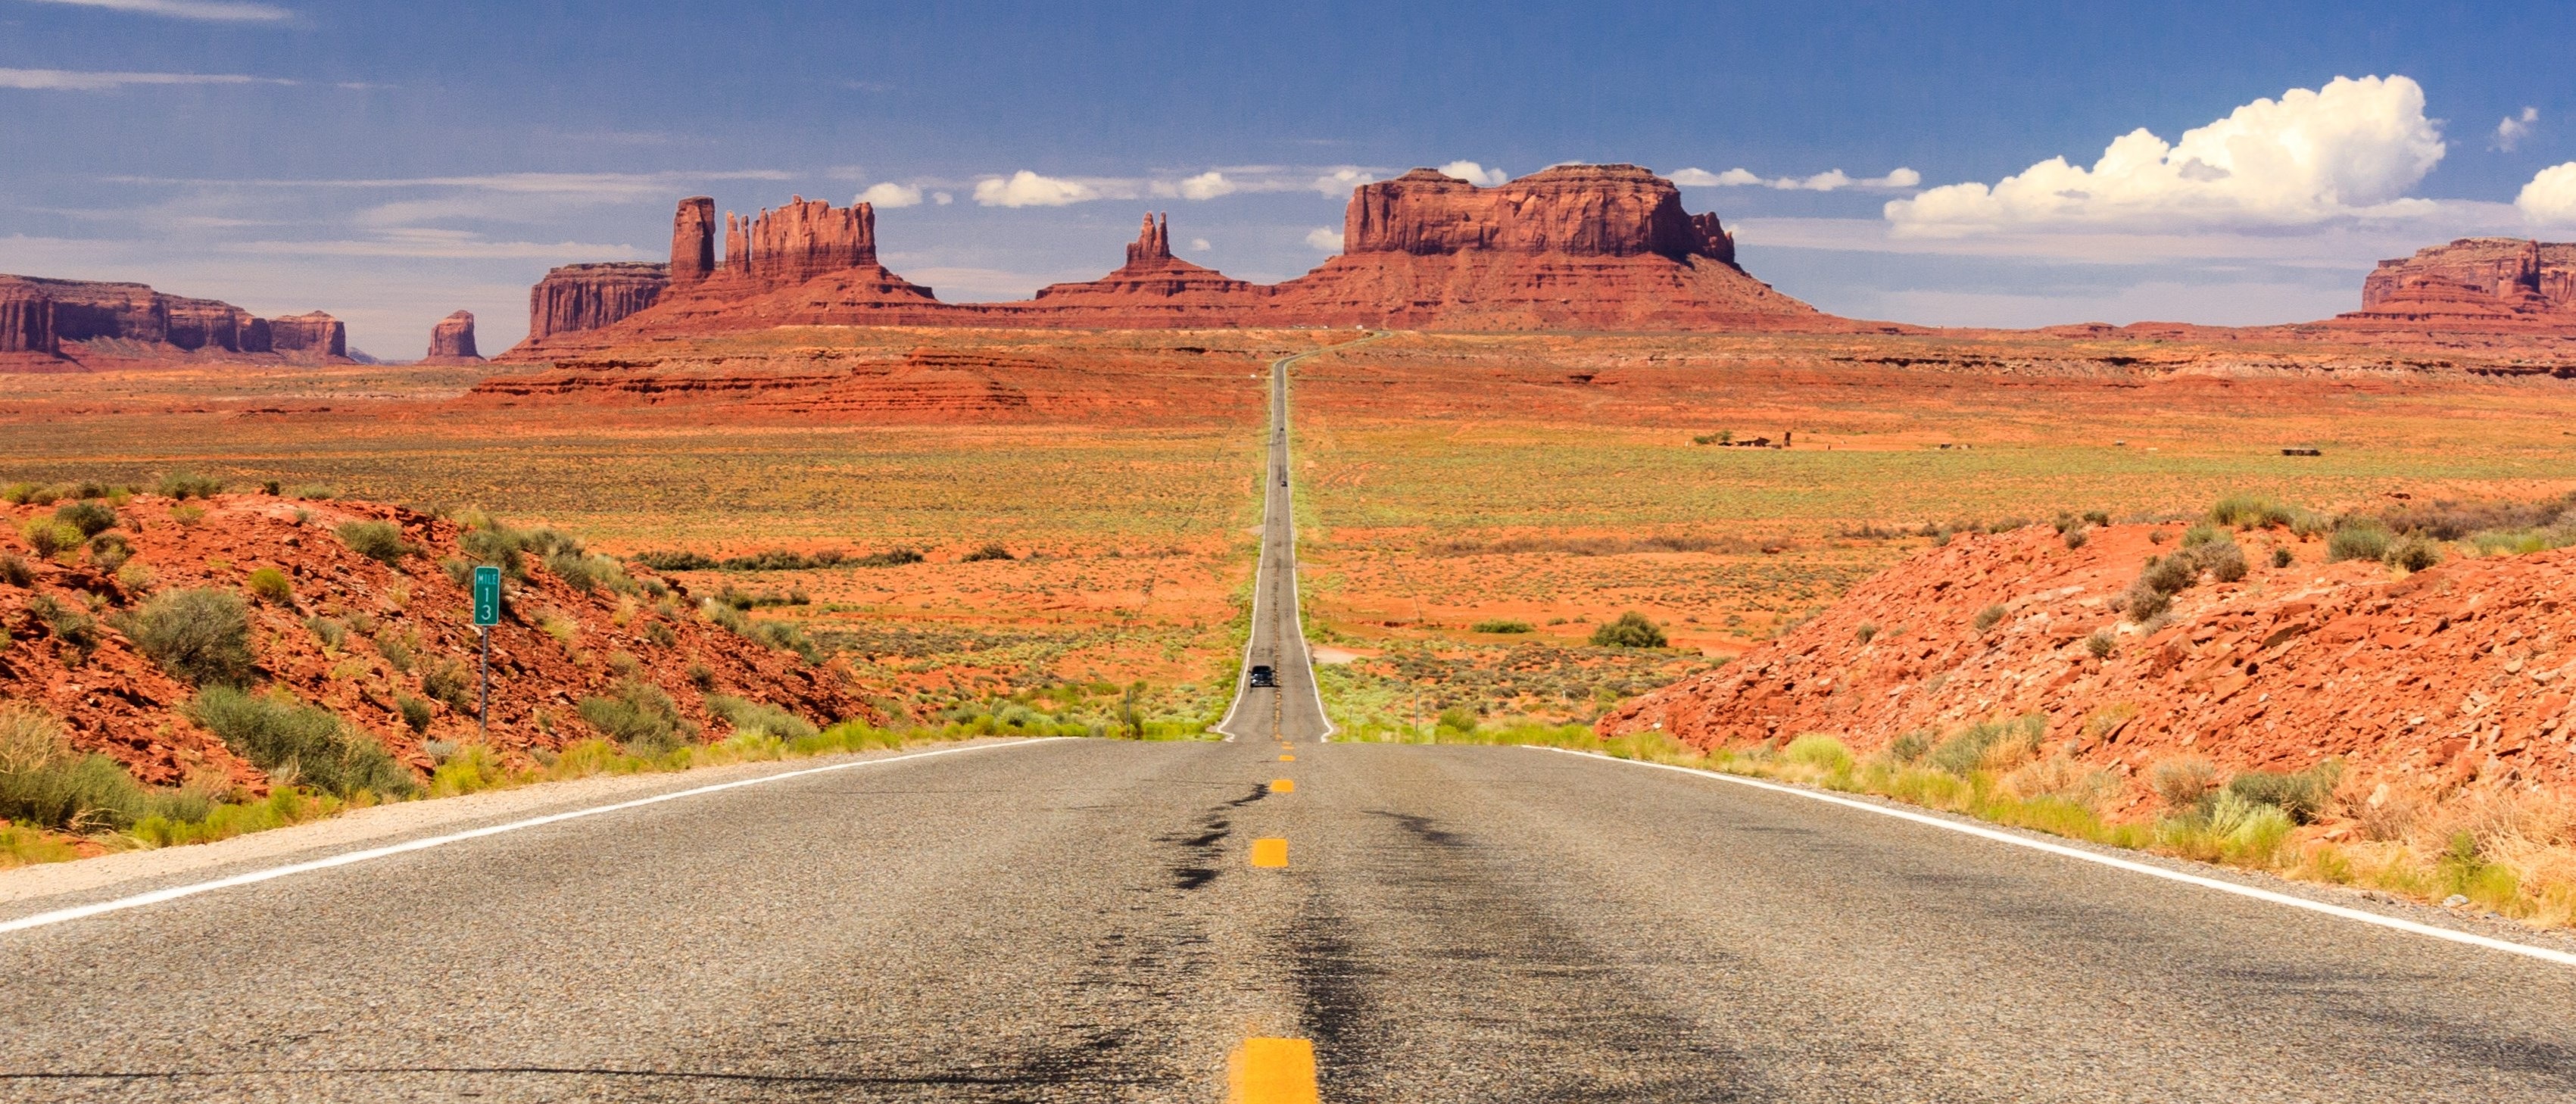 grand canyon trips from las vegas with Roadtrip West Usa on Grand Canyon Skywalk Map together with Gran Canon Re endaciones Plan Visita additionally Bus likewise Thunder From Down Under Las Vegas additionally South Rim Grand Canyon Tour.